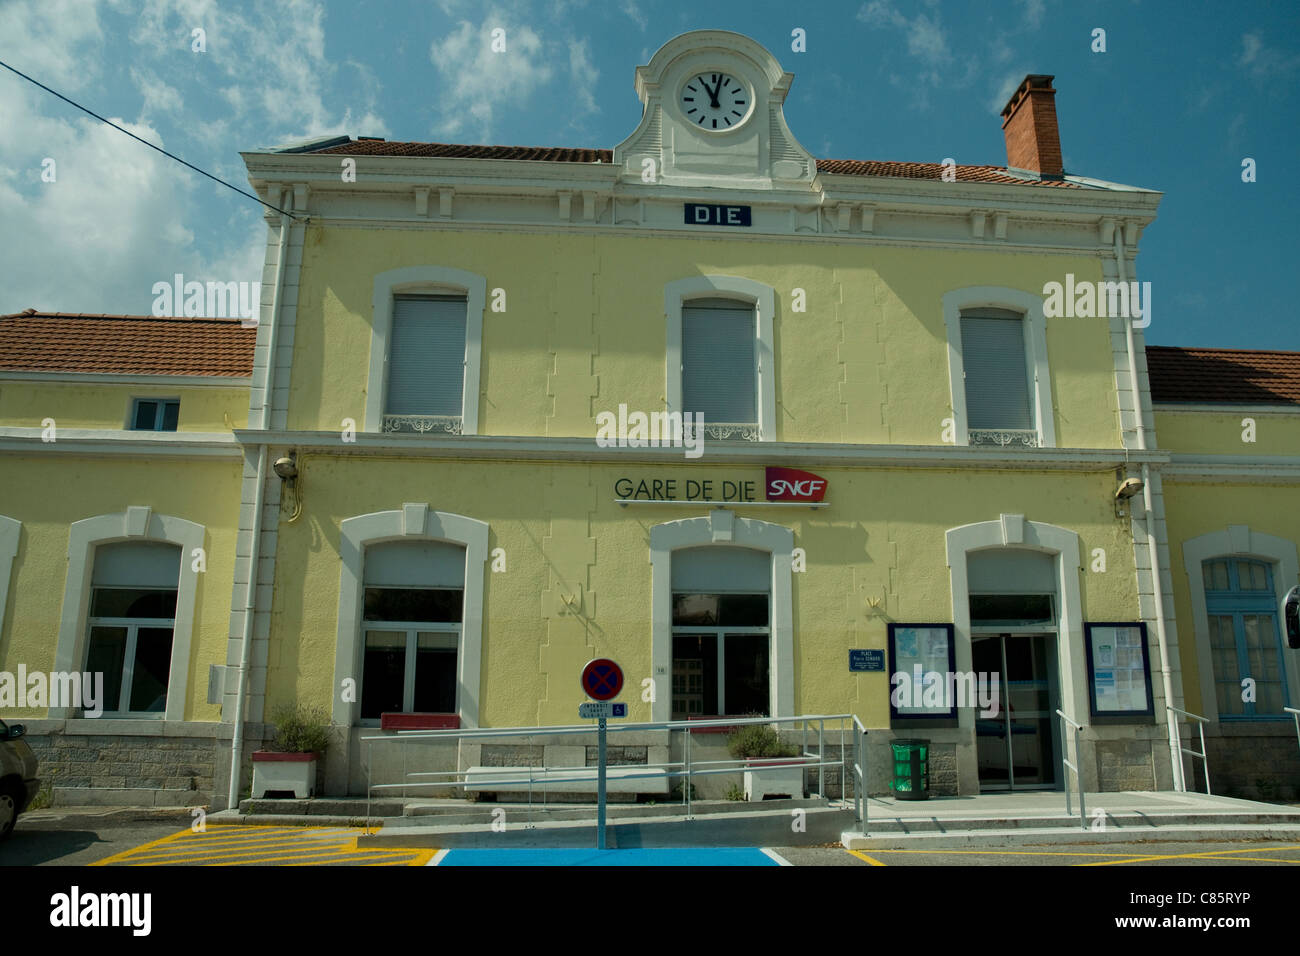 Die (pronounced Dee) railway station in the foothills of the French Alps - Stock Image